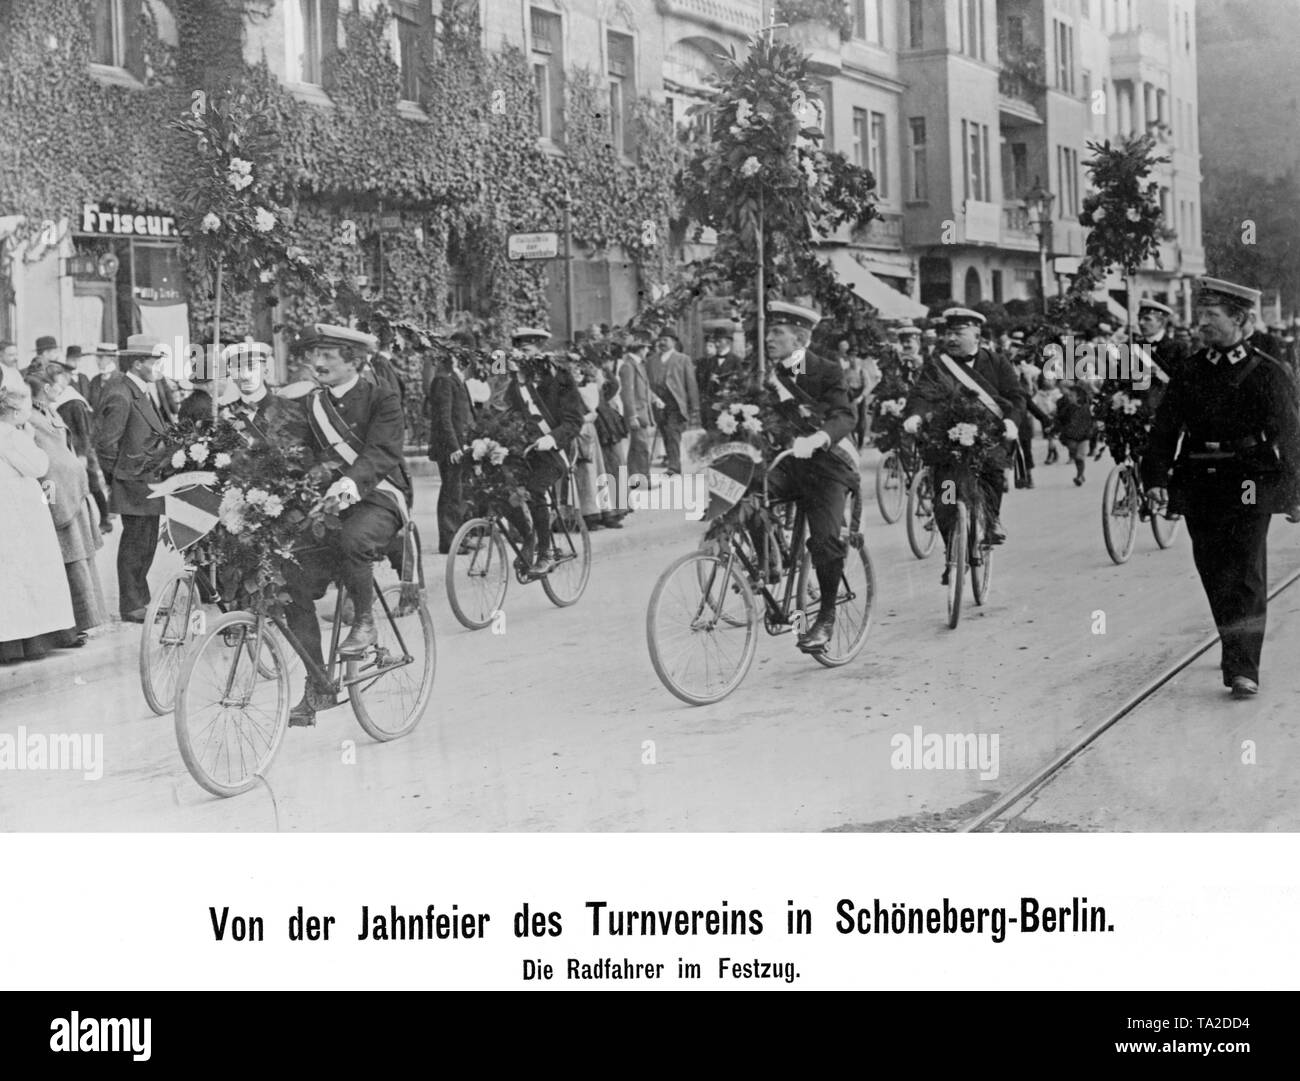 Members of a gymnastics club on bicycles at the pageant of the annual celebration in Spandau, Berlin, on October 3, 1911. Stock Photo